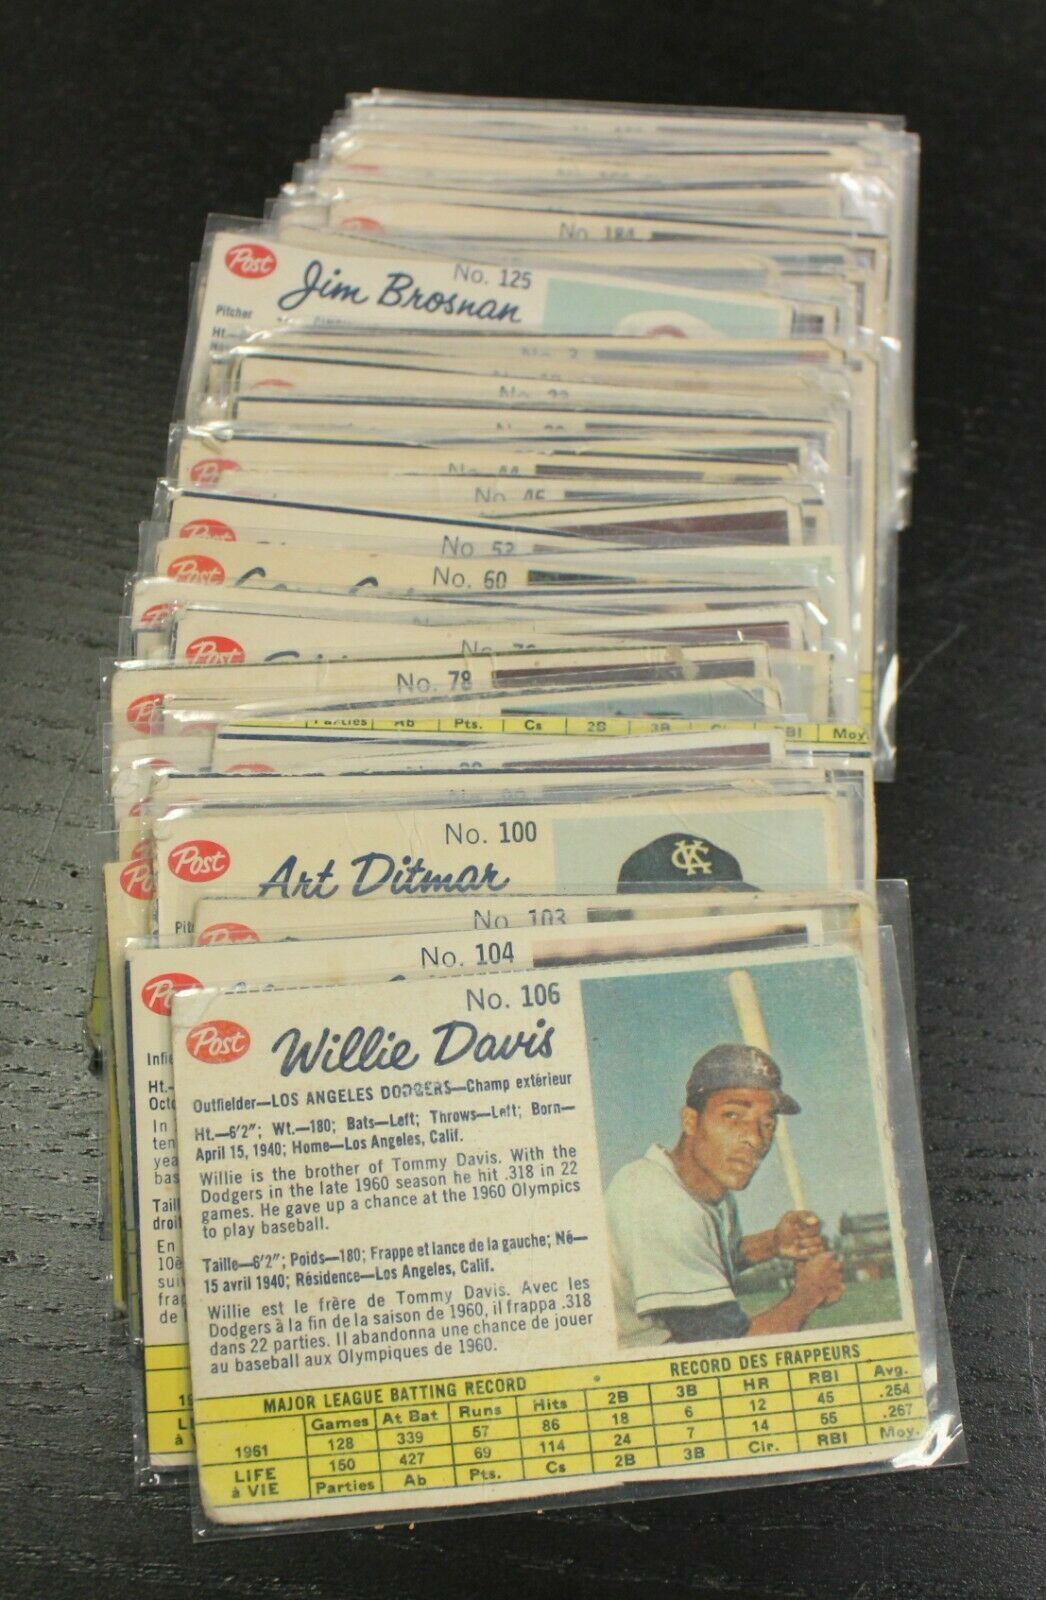 1962 Post Cereal Canada Baseball Cards 88/200 - Missing Cards Noted in Listing